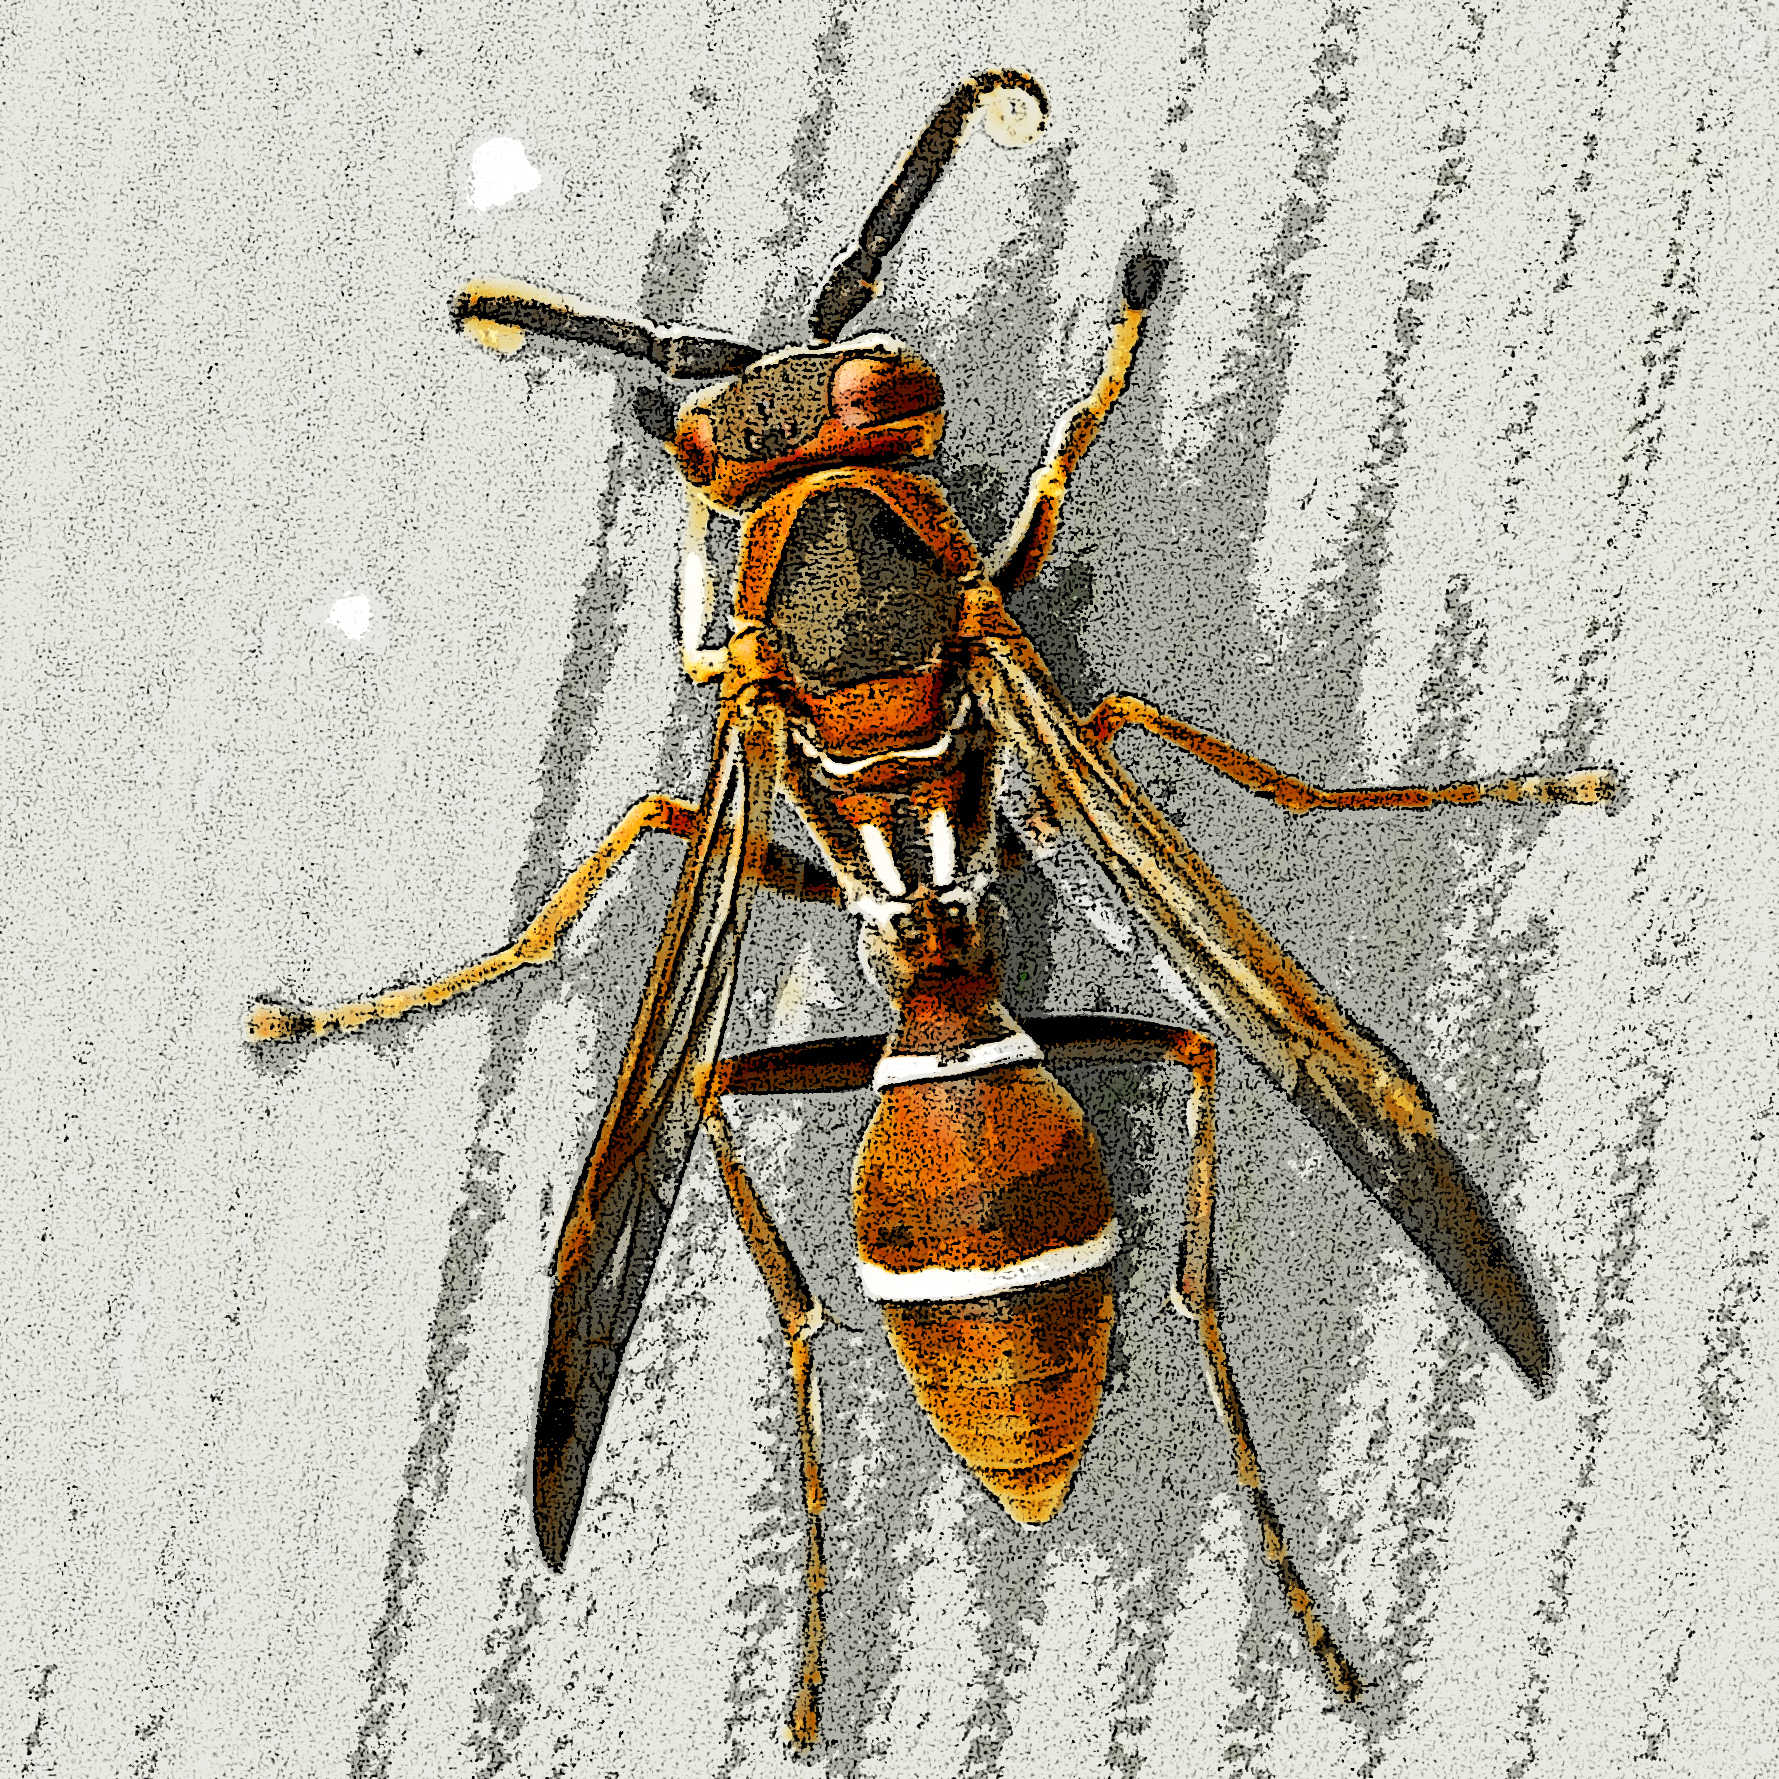 This wasp was 'captured' in Plattenberg Bay, South Africa.